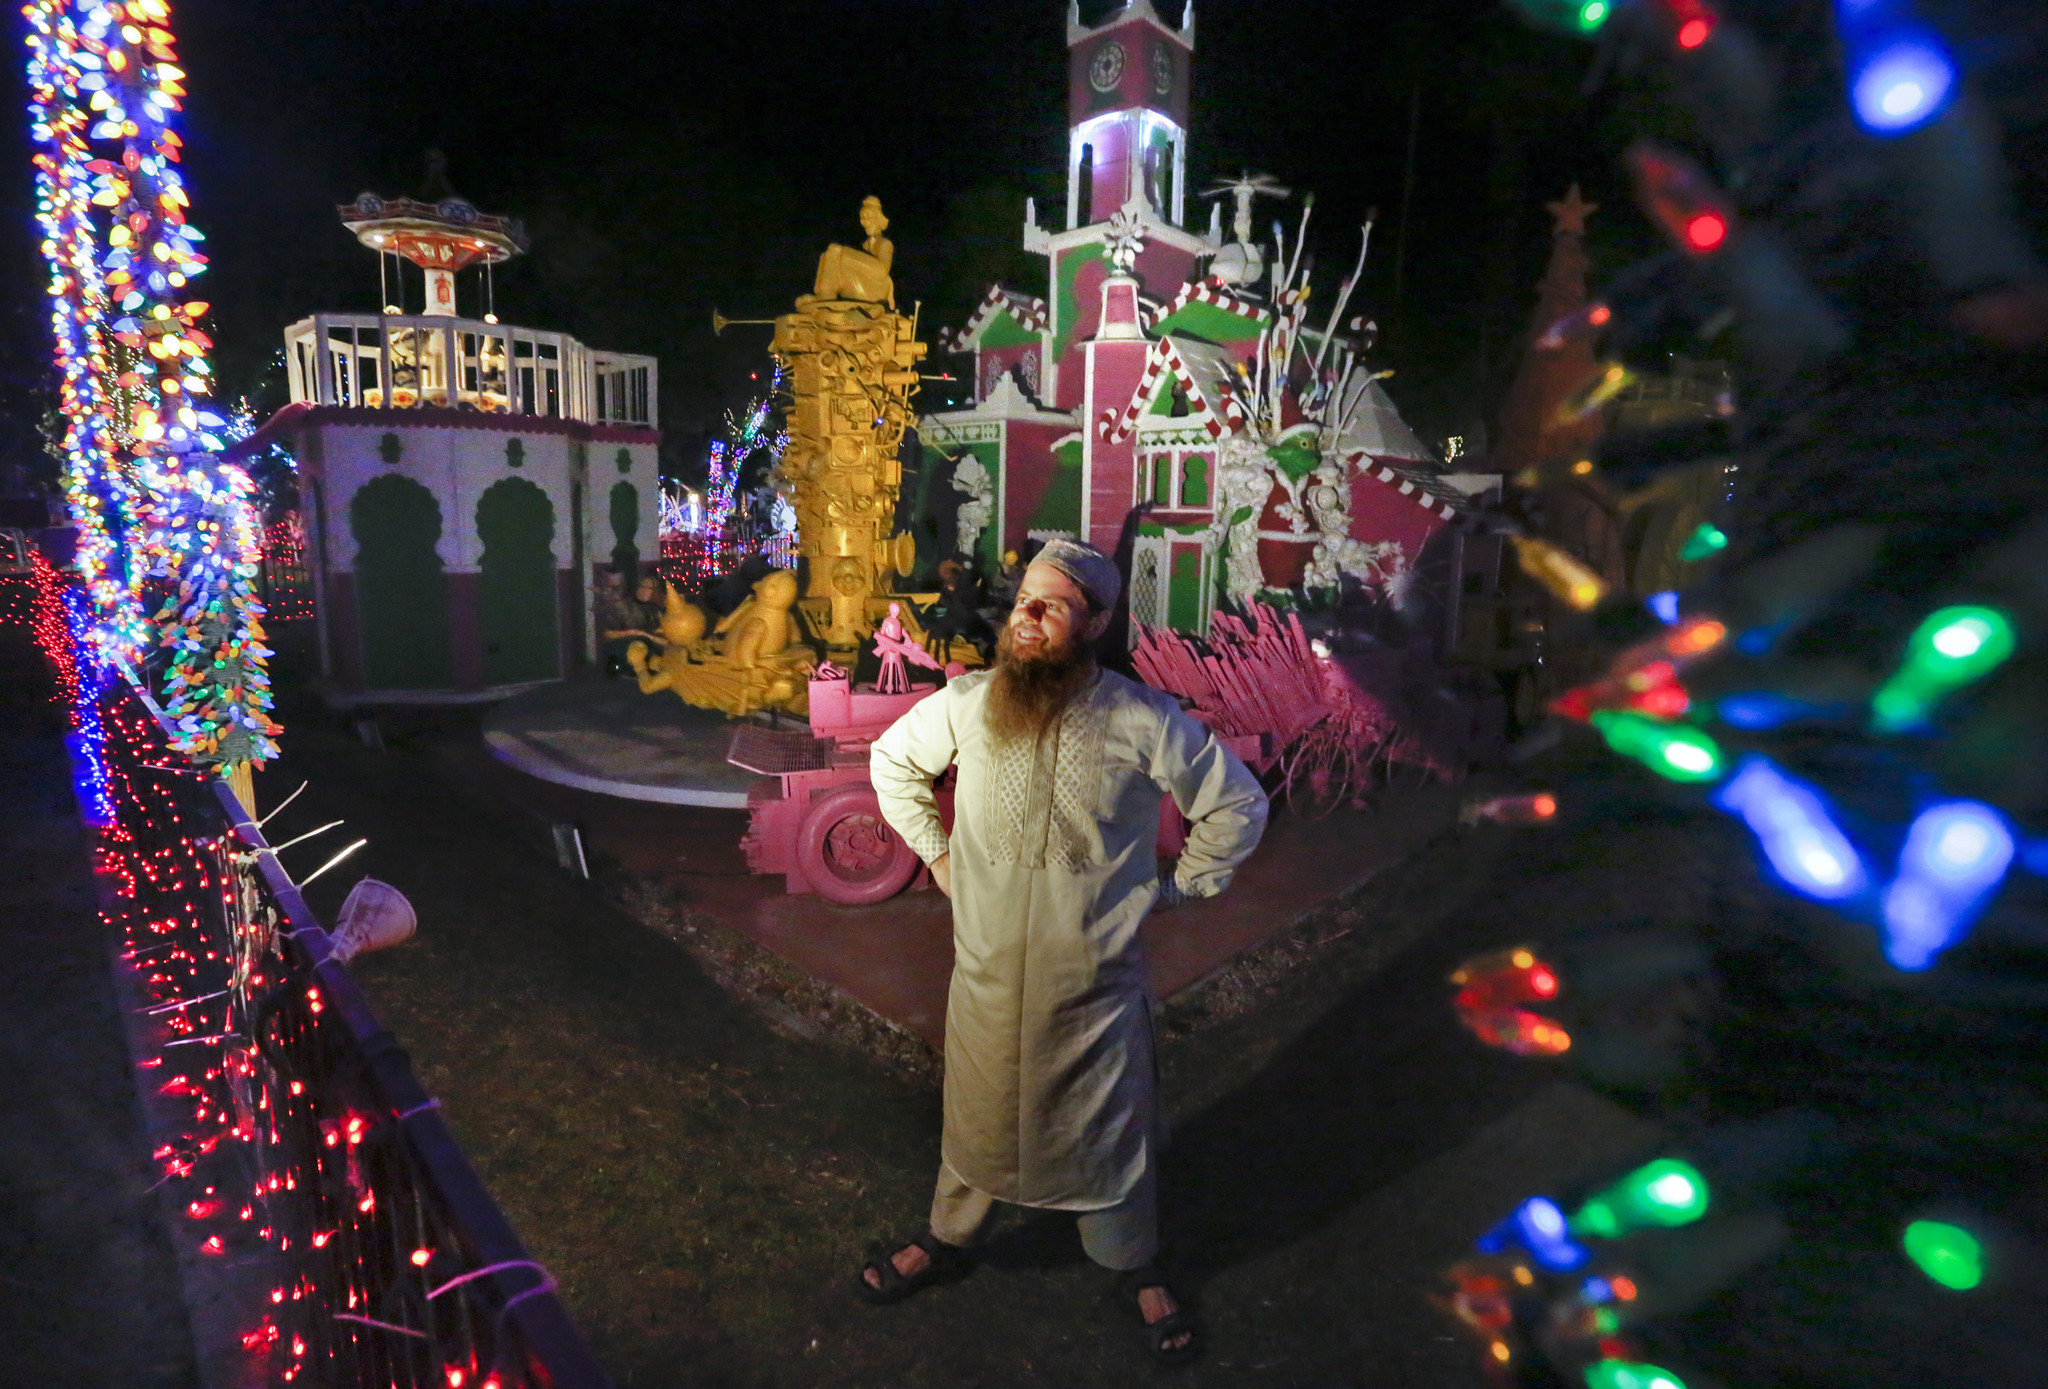 Robolights, the surreal holiday display in Palm Springs, is getting a new home